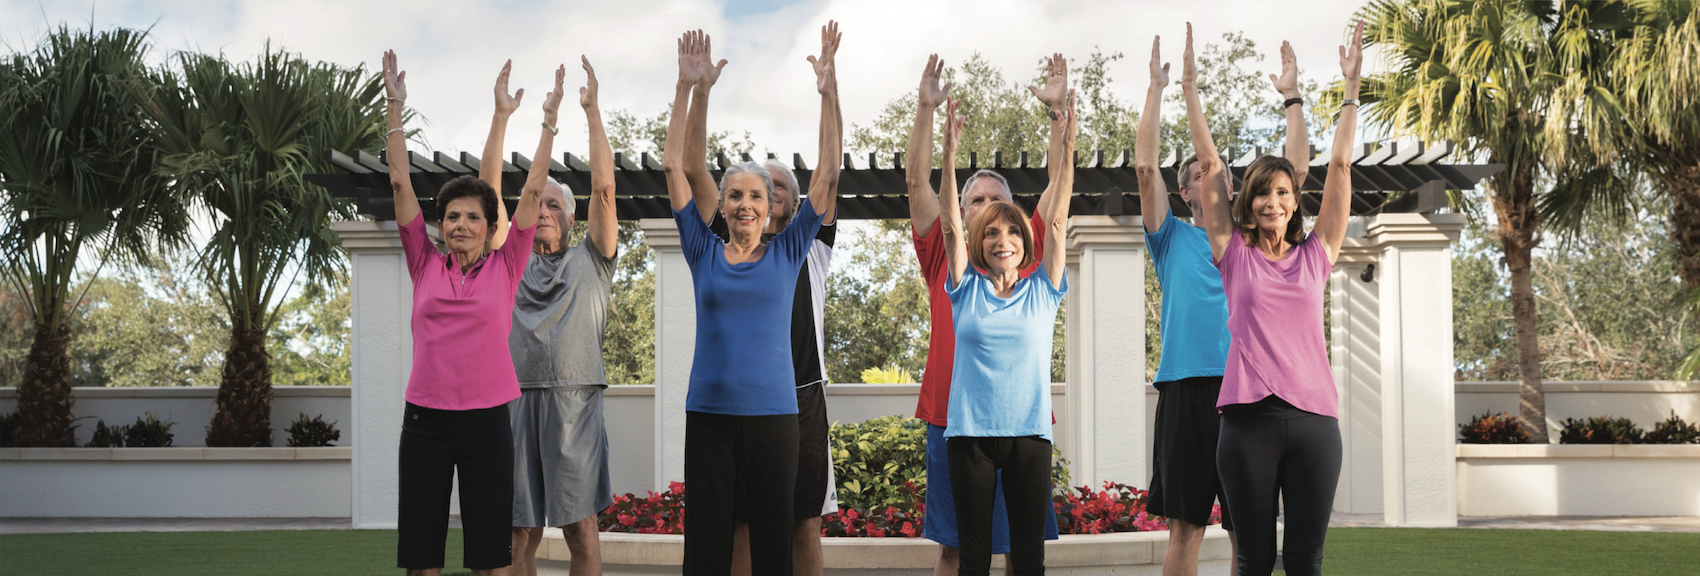 yoga outside of assisted living community